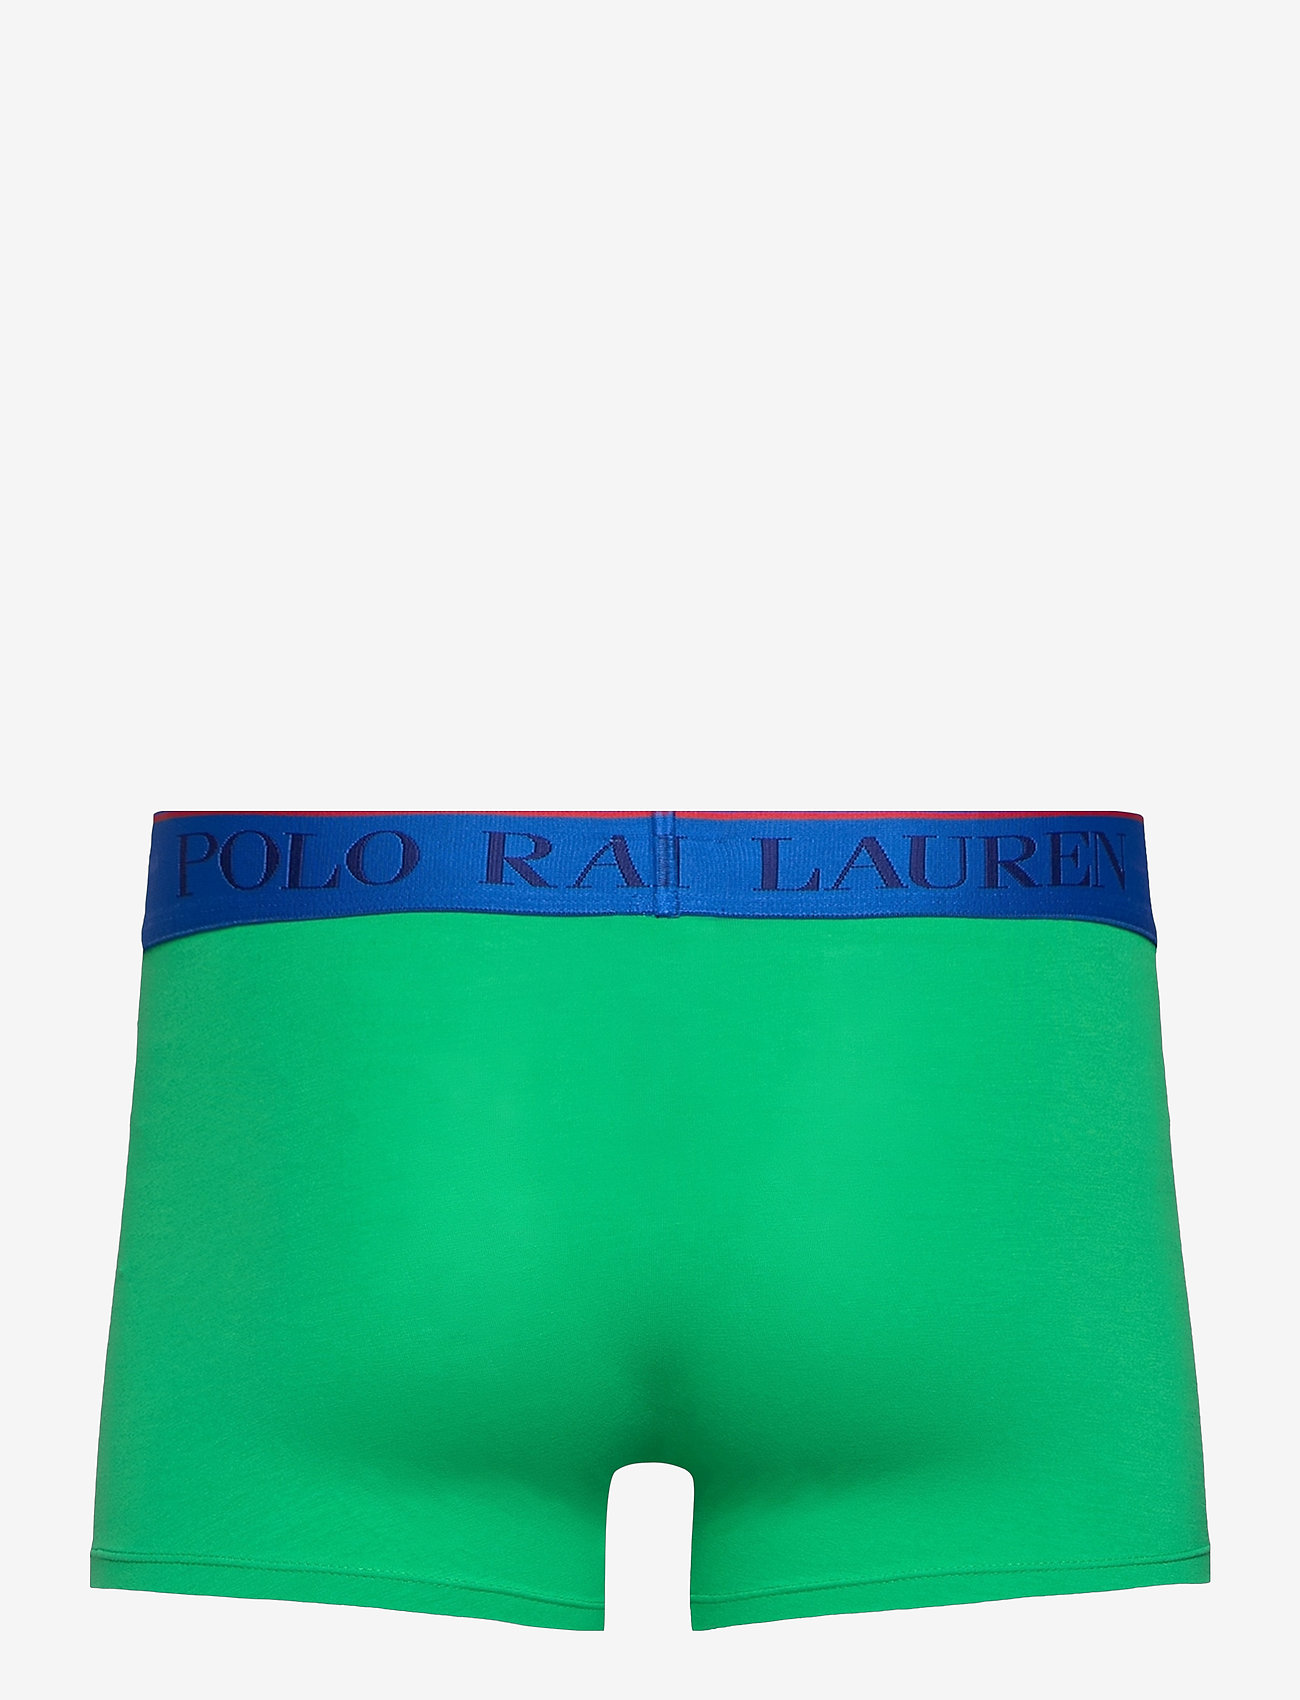 Polo Ralph Lauren Underwear - Stretch Cotton Trunk - boxers - biscay green - 1